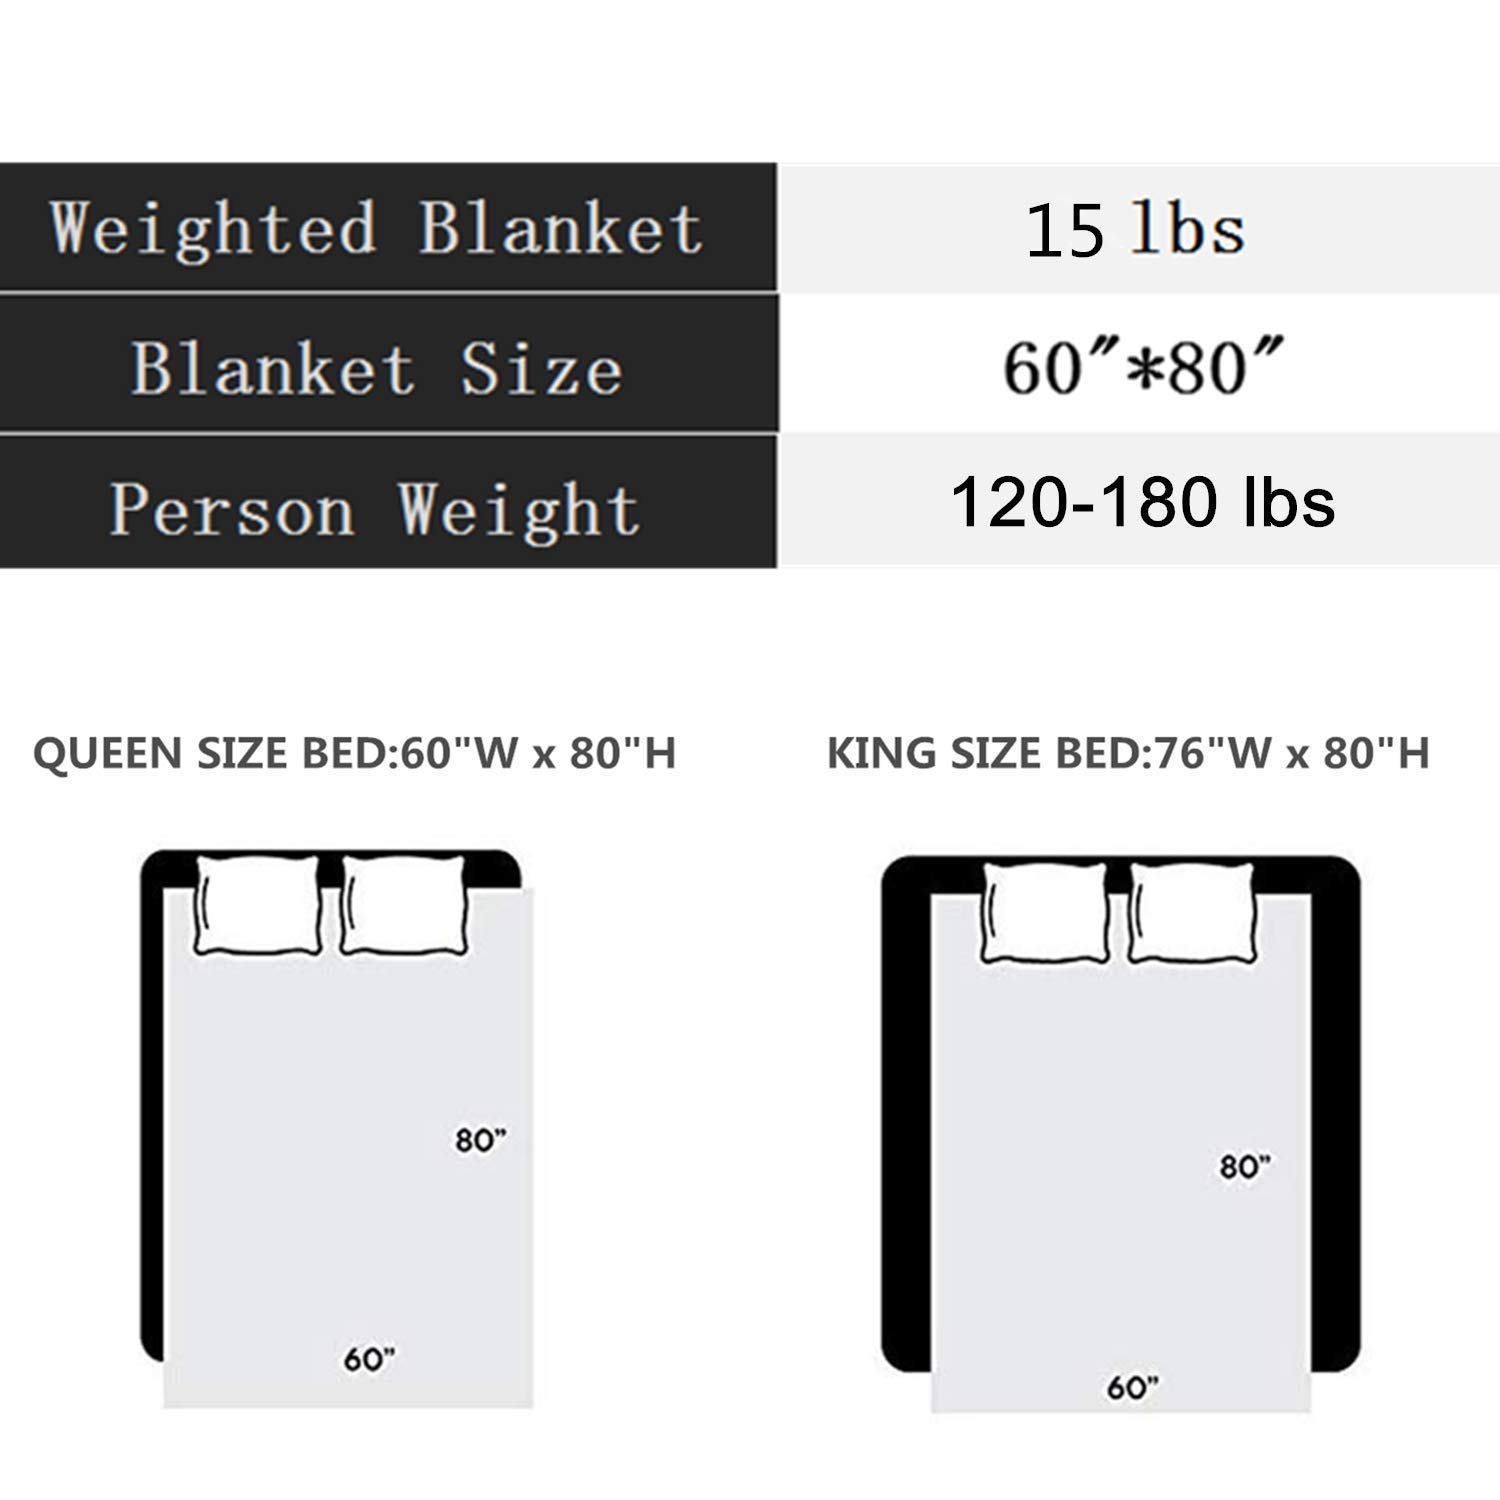 Small Square Quilting Weighted Blanket 20 lbs White 60 x 80 Queen Size Cotton Material with Glass Beads Fill 20lbs Weighted Bed Blankets Adult boyou